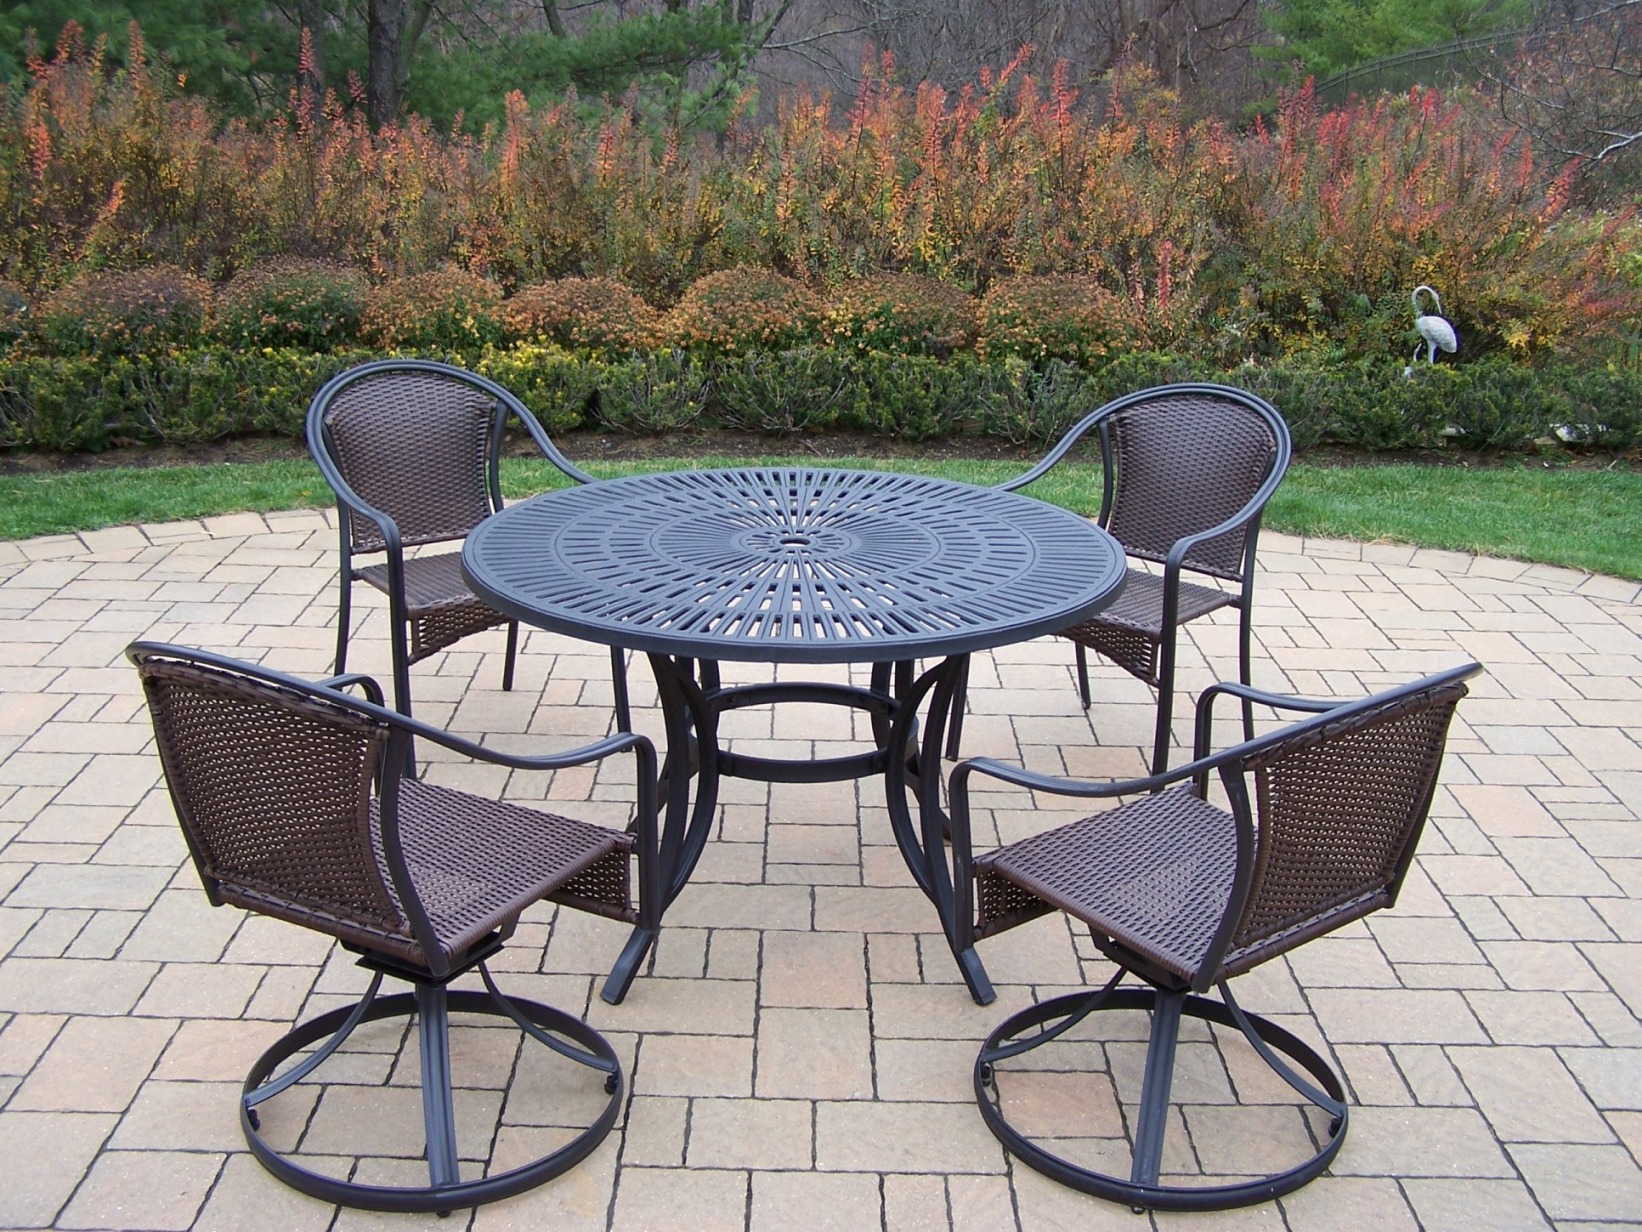 wicker swivel outdoor dining chair pink accent oakland living 5 pc patio set w table